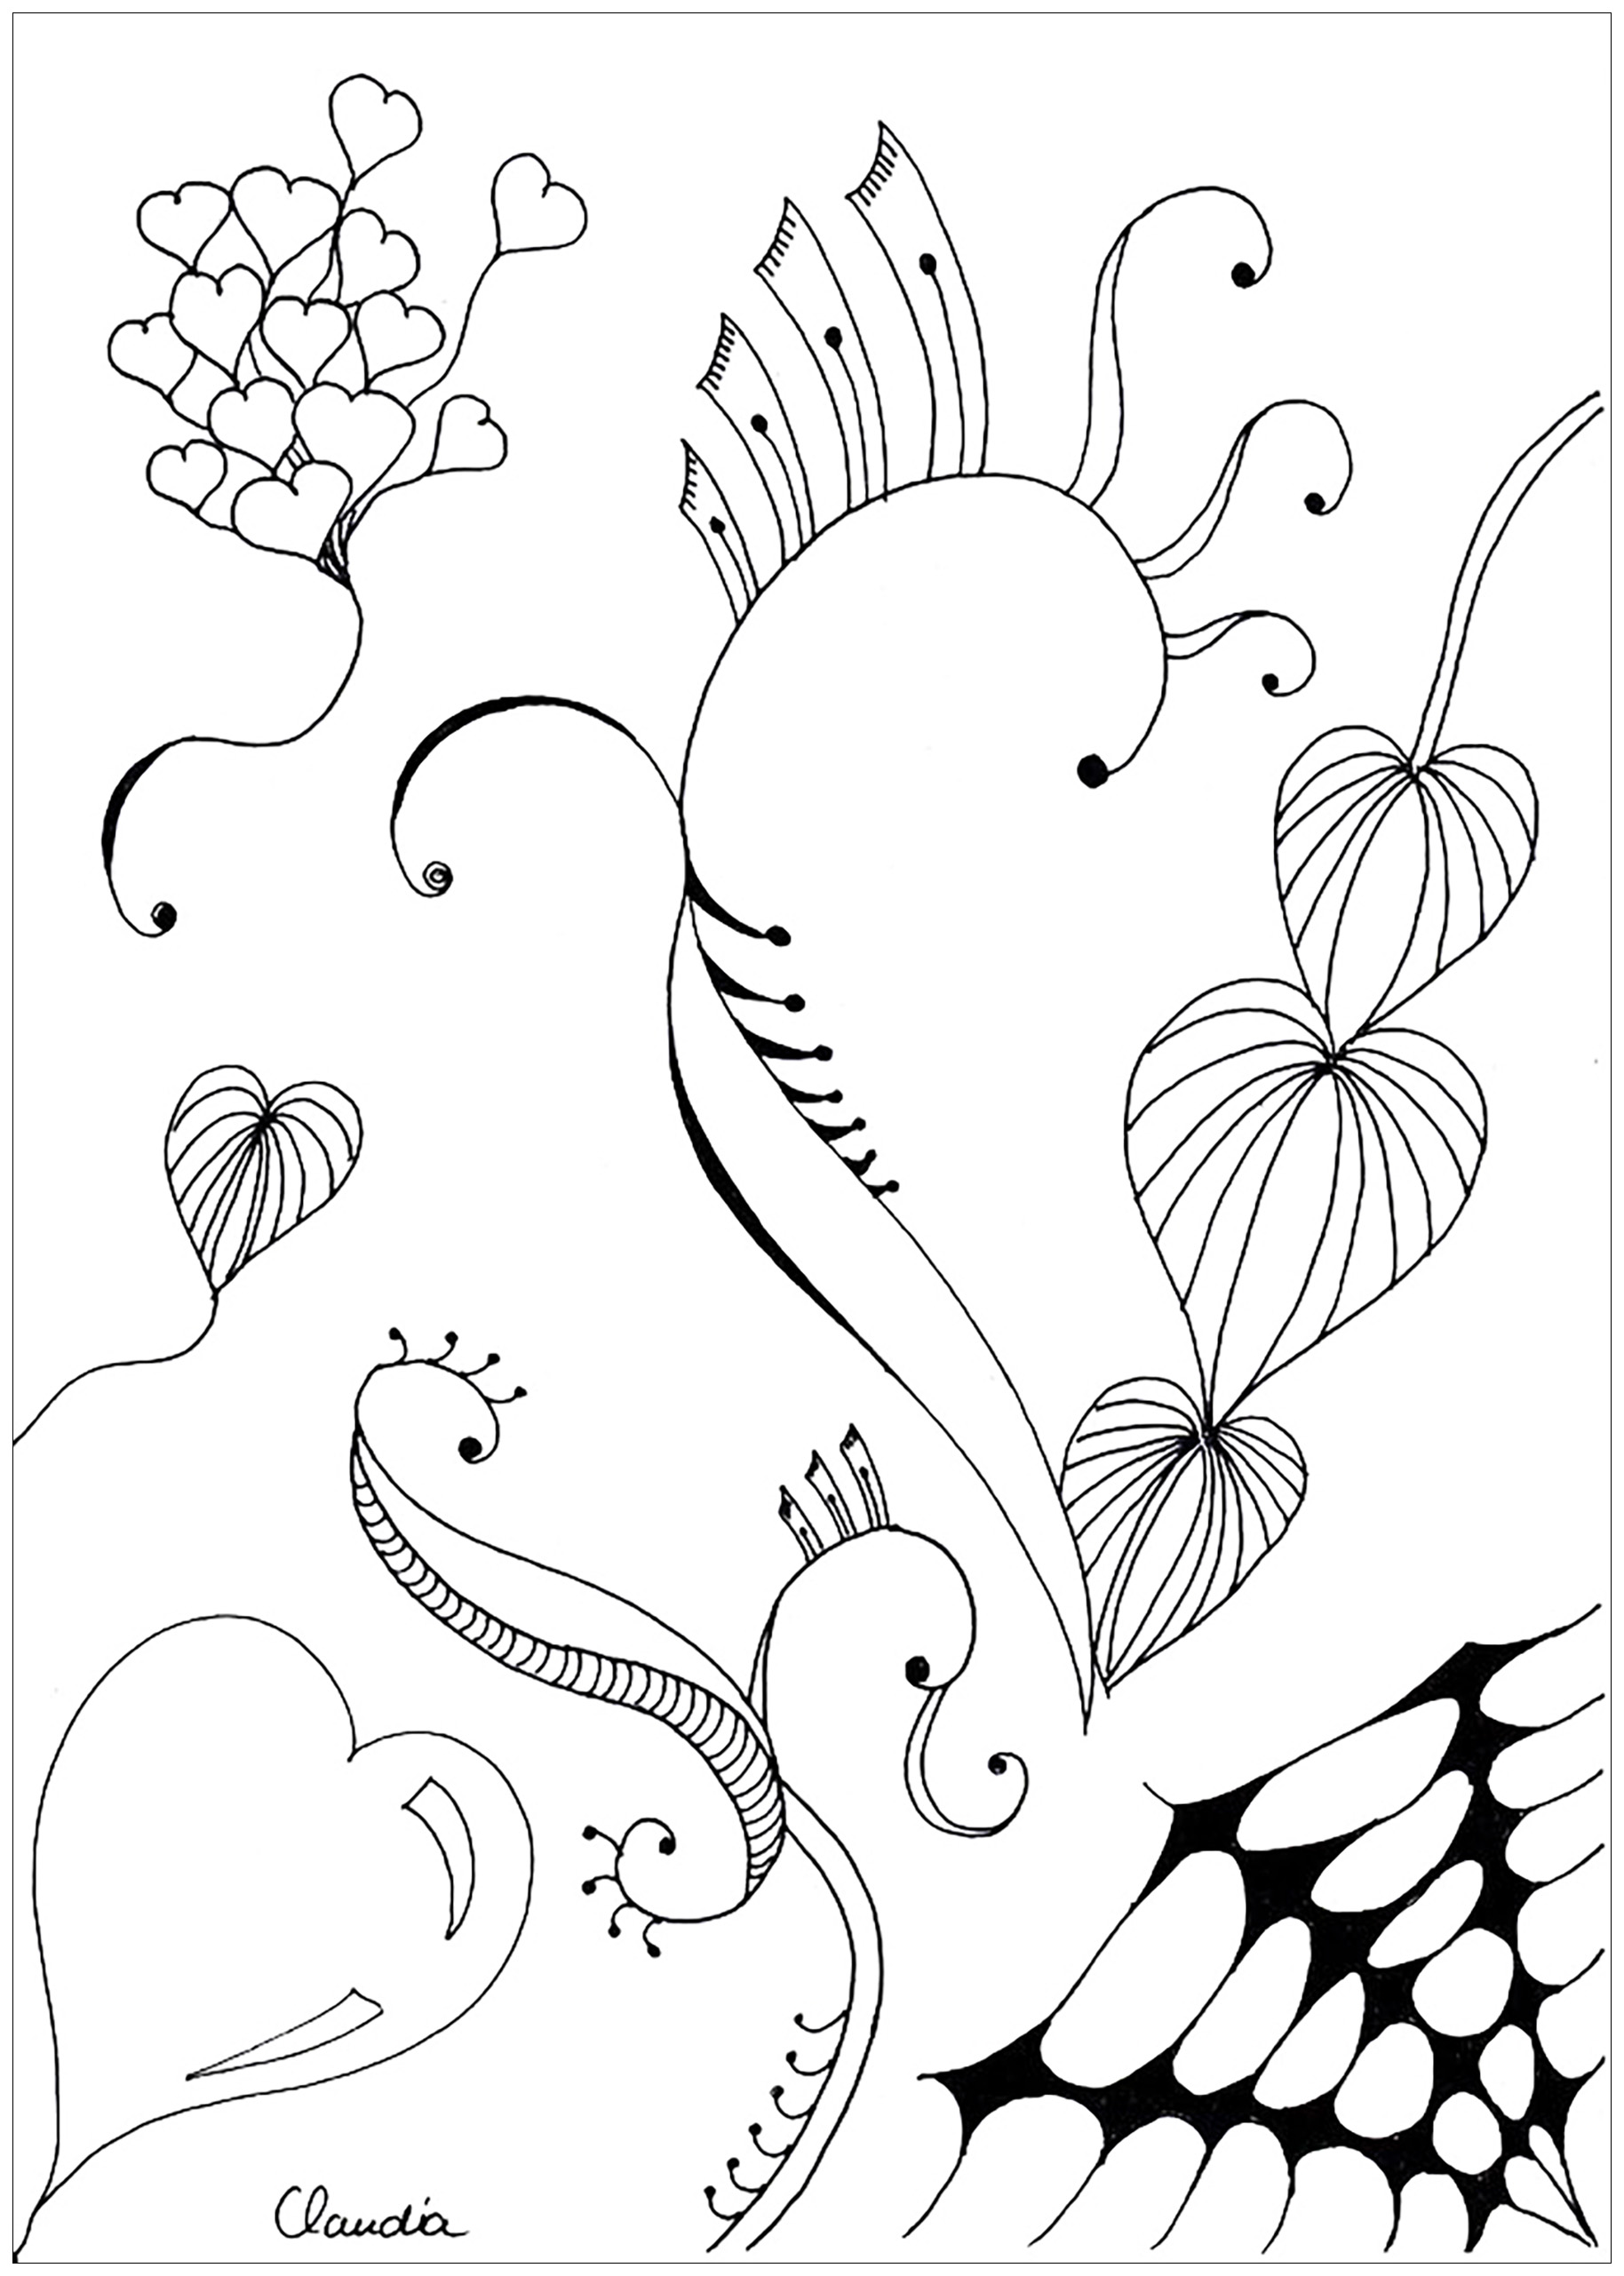 coloring page simple cow drawing simple at getdrawings free download coloring page simple